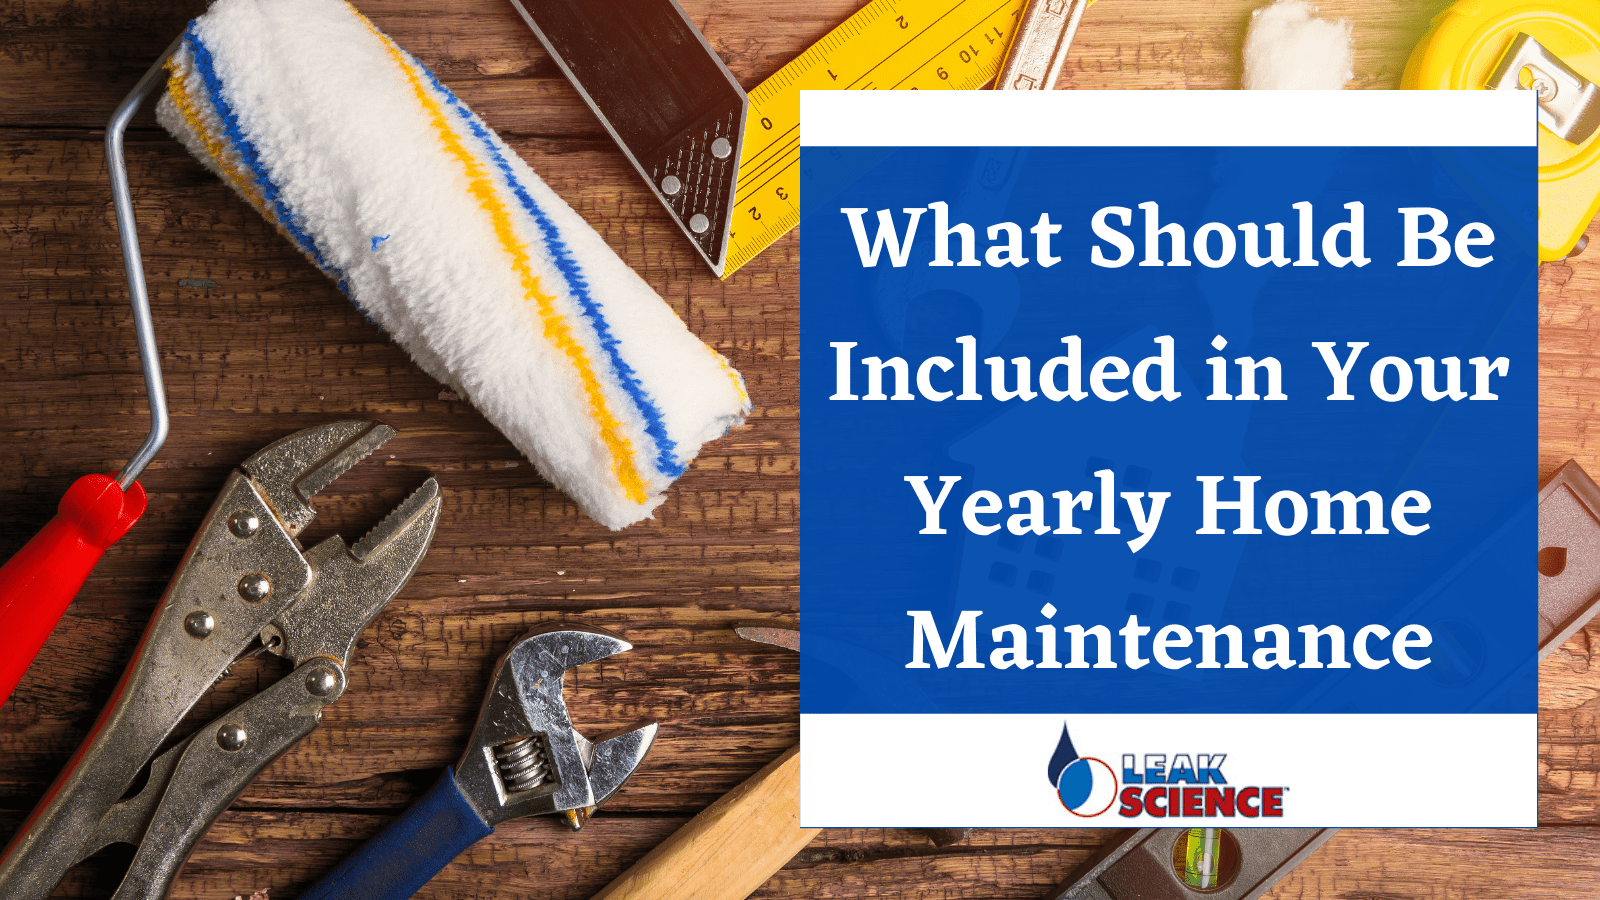 What should be included in your yearly home maintenance